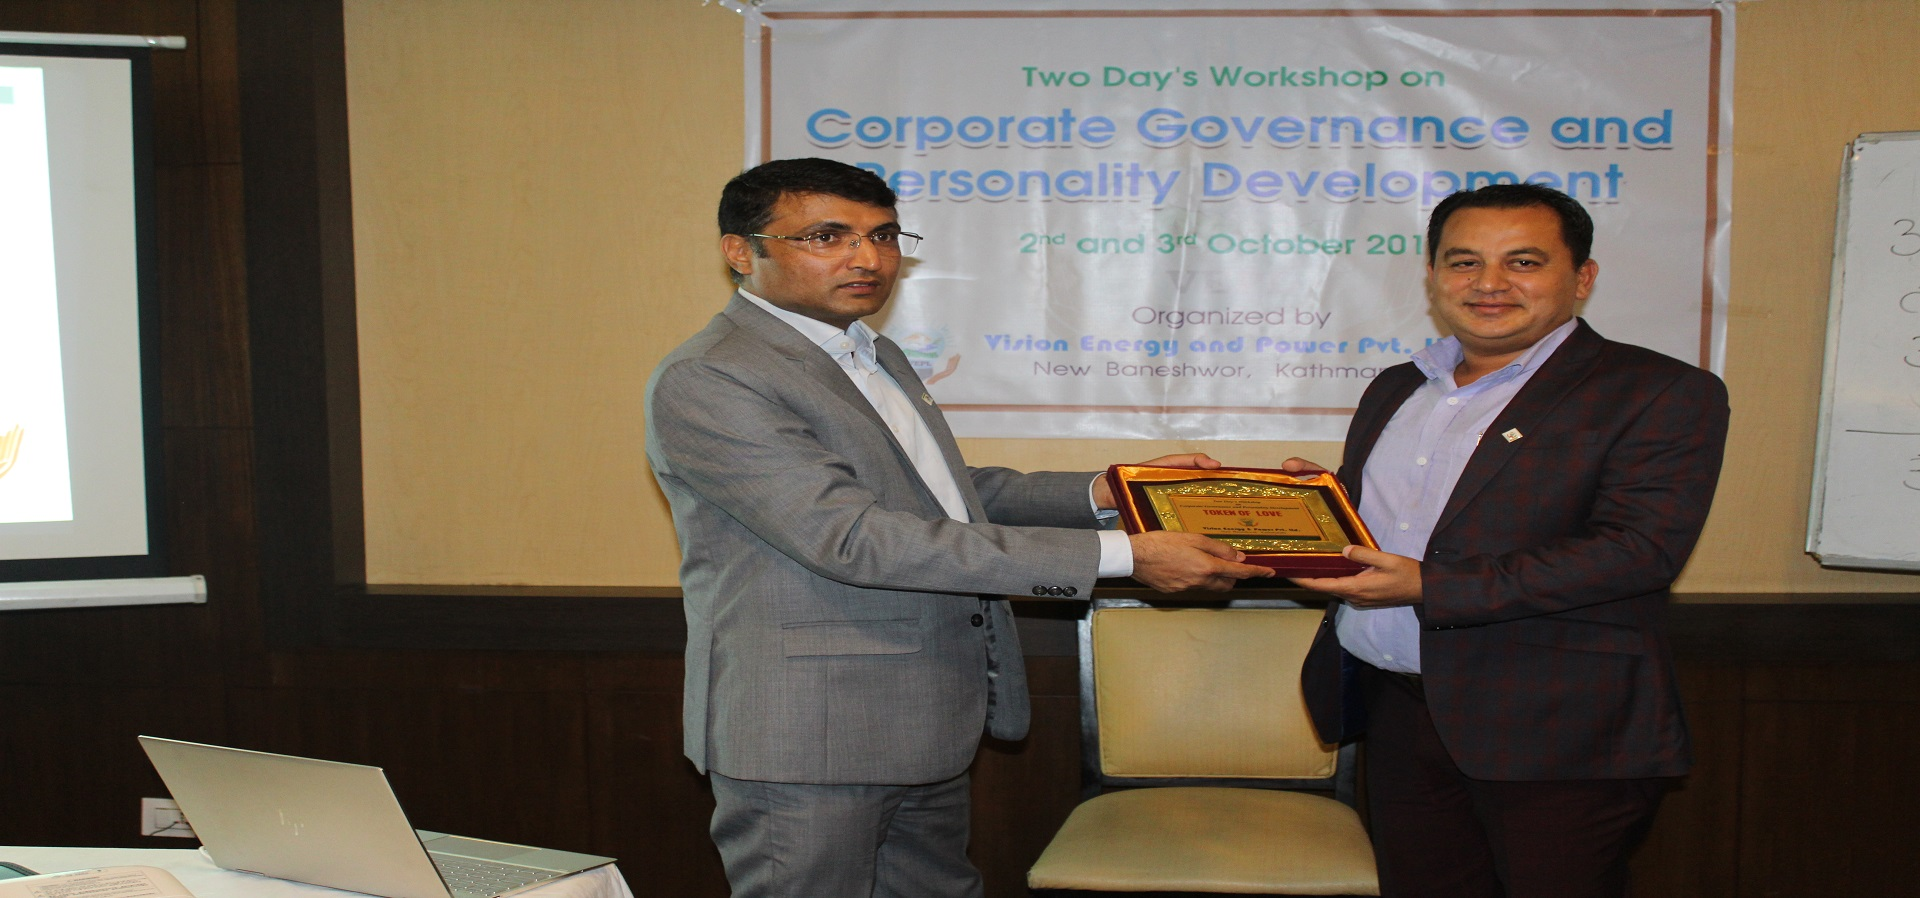 Corporate Governance and Personality Development Workshop